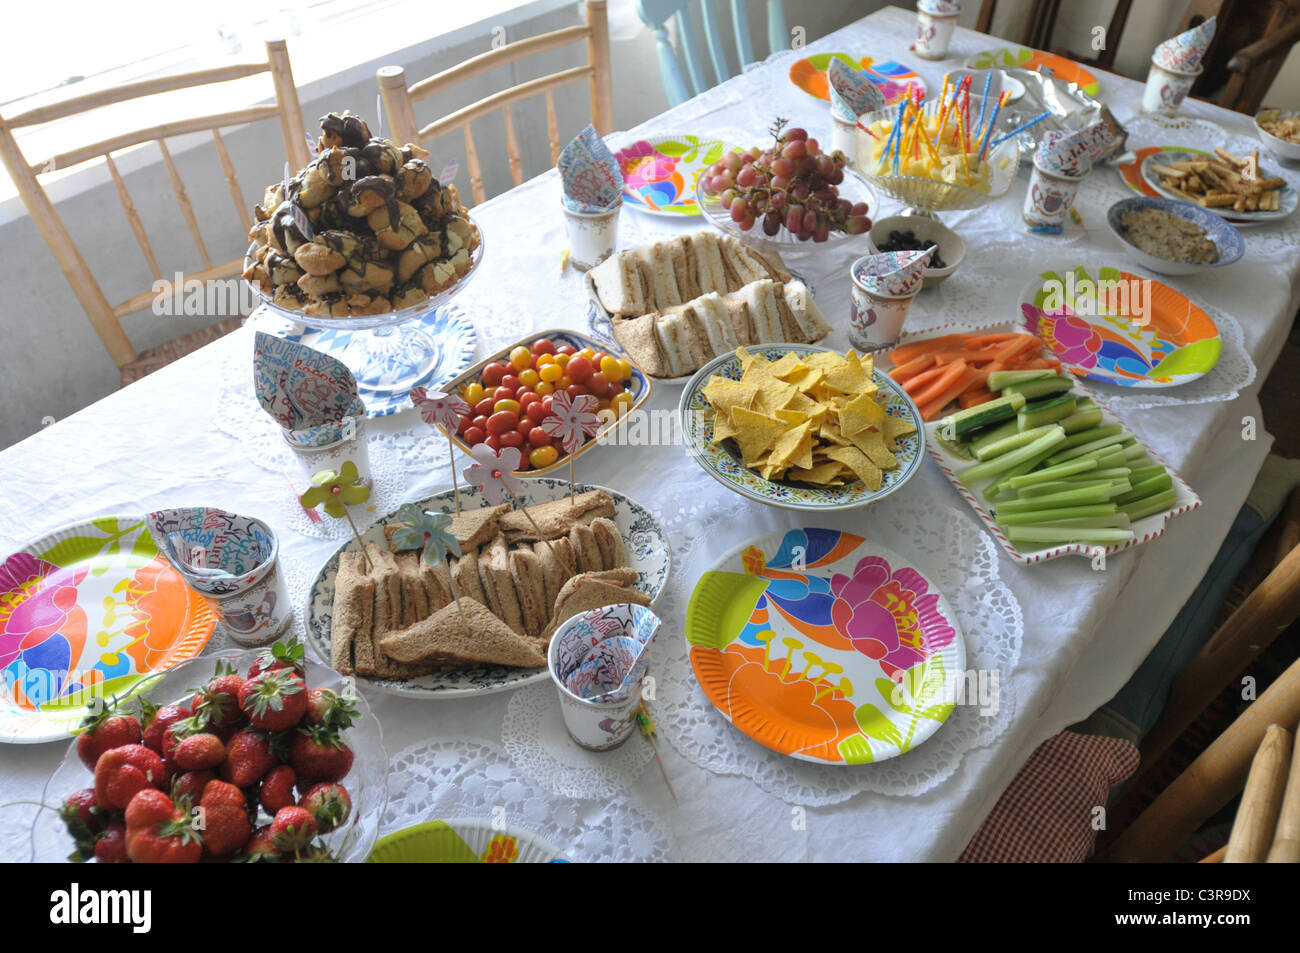 A table laid for a child's birthday party Stock Photo